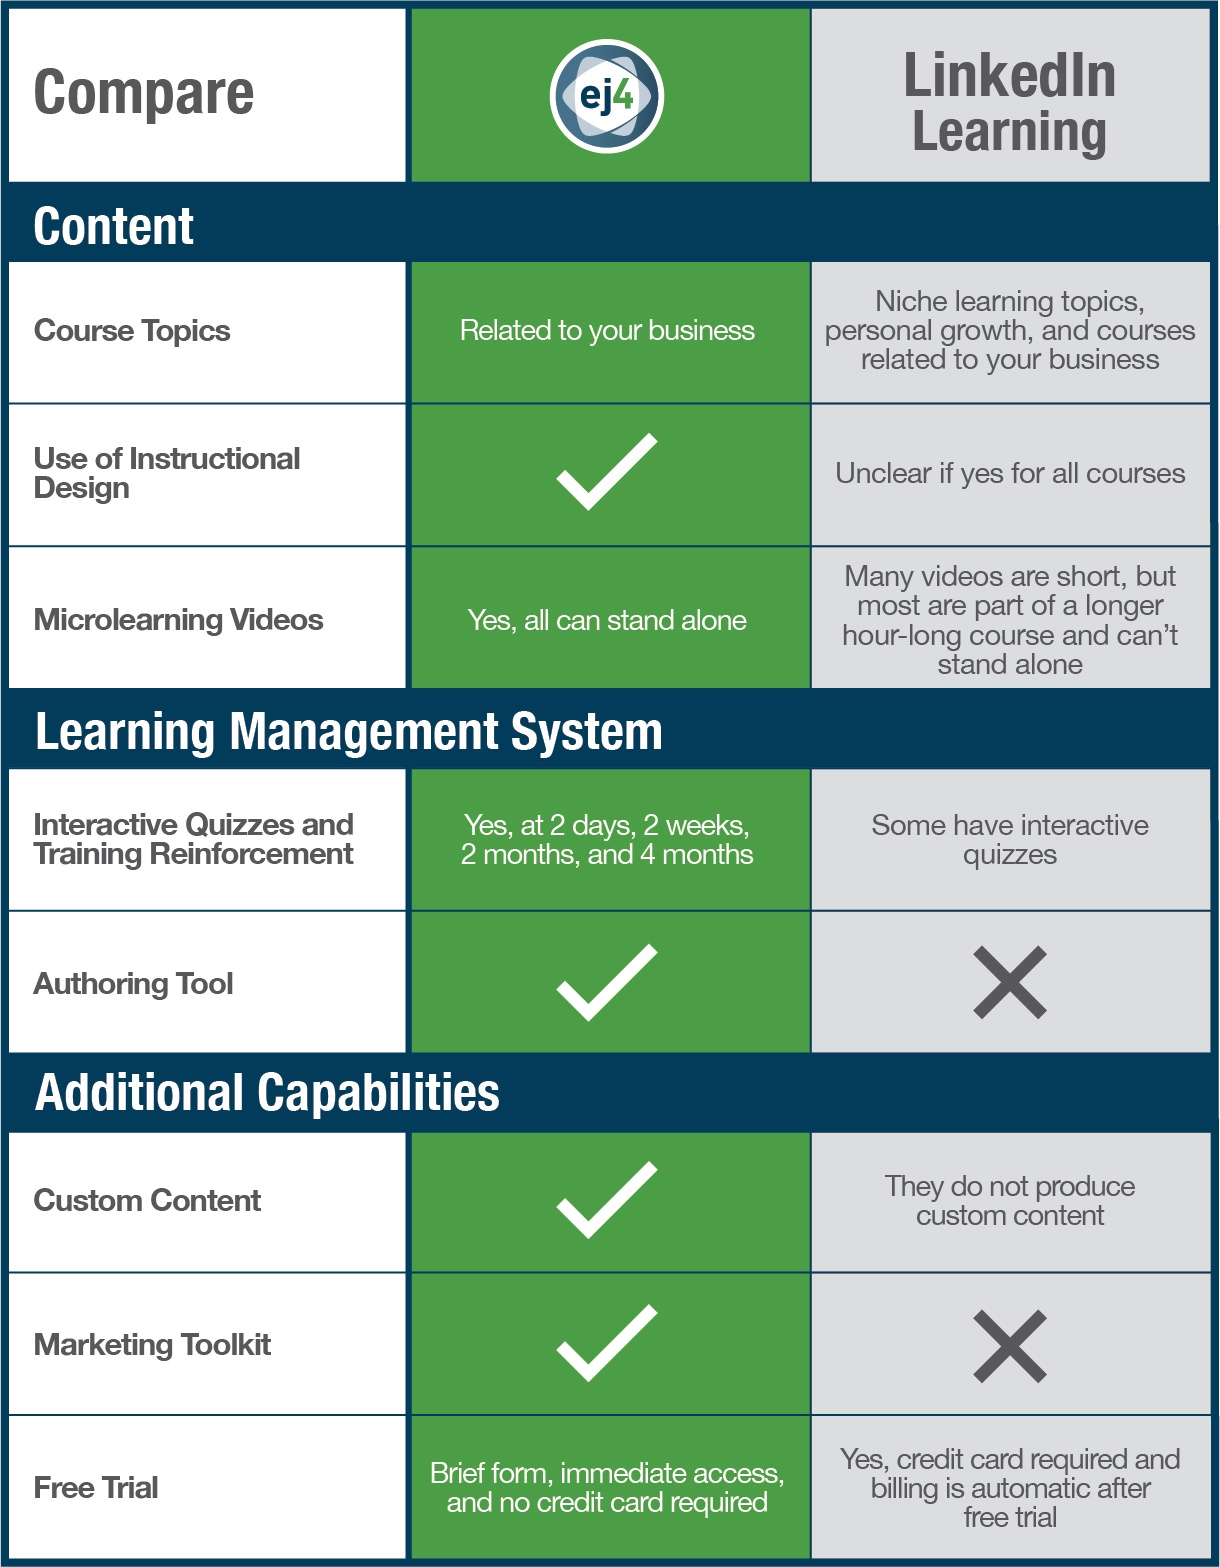 Compare LinkedIn Learning with ej4